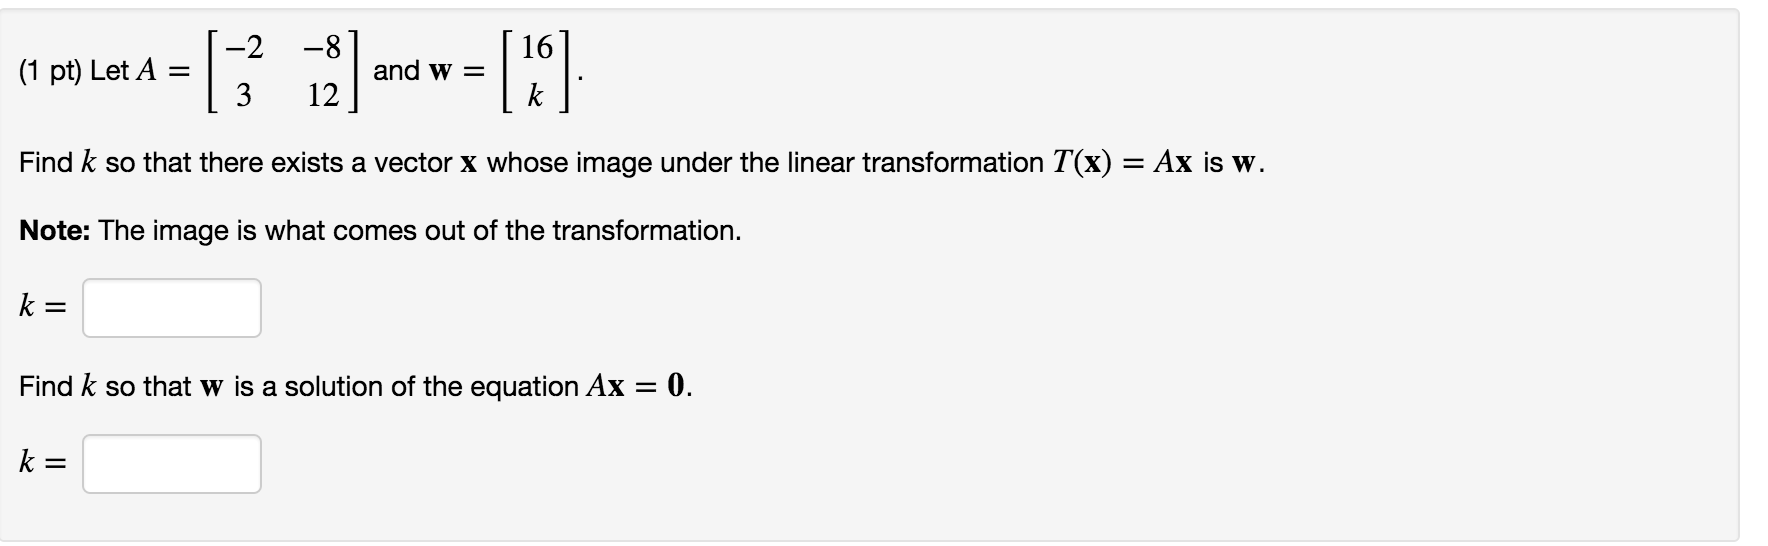 Algebra archive march 06 2016 chegg let a 2 3 8 12 and w 16 fandeluxe Choice Image